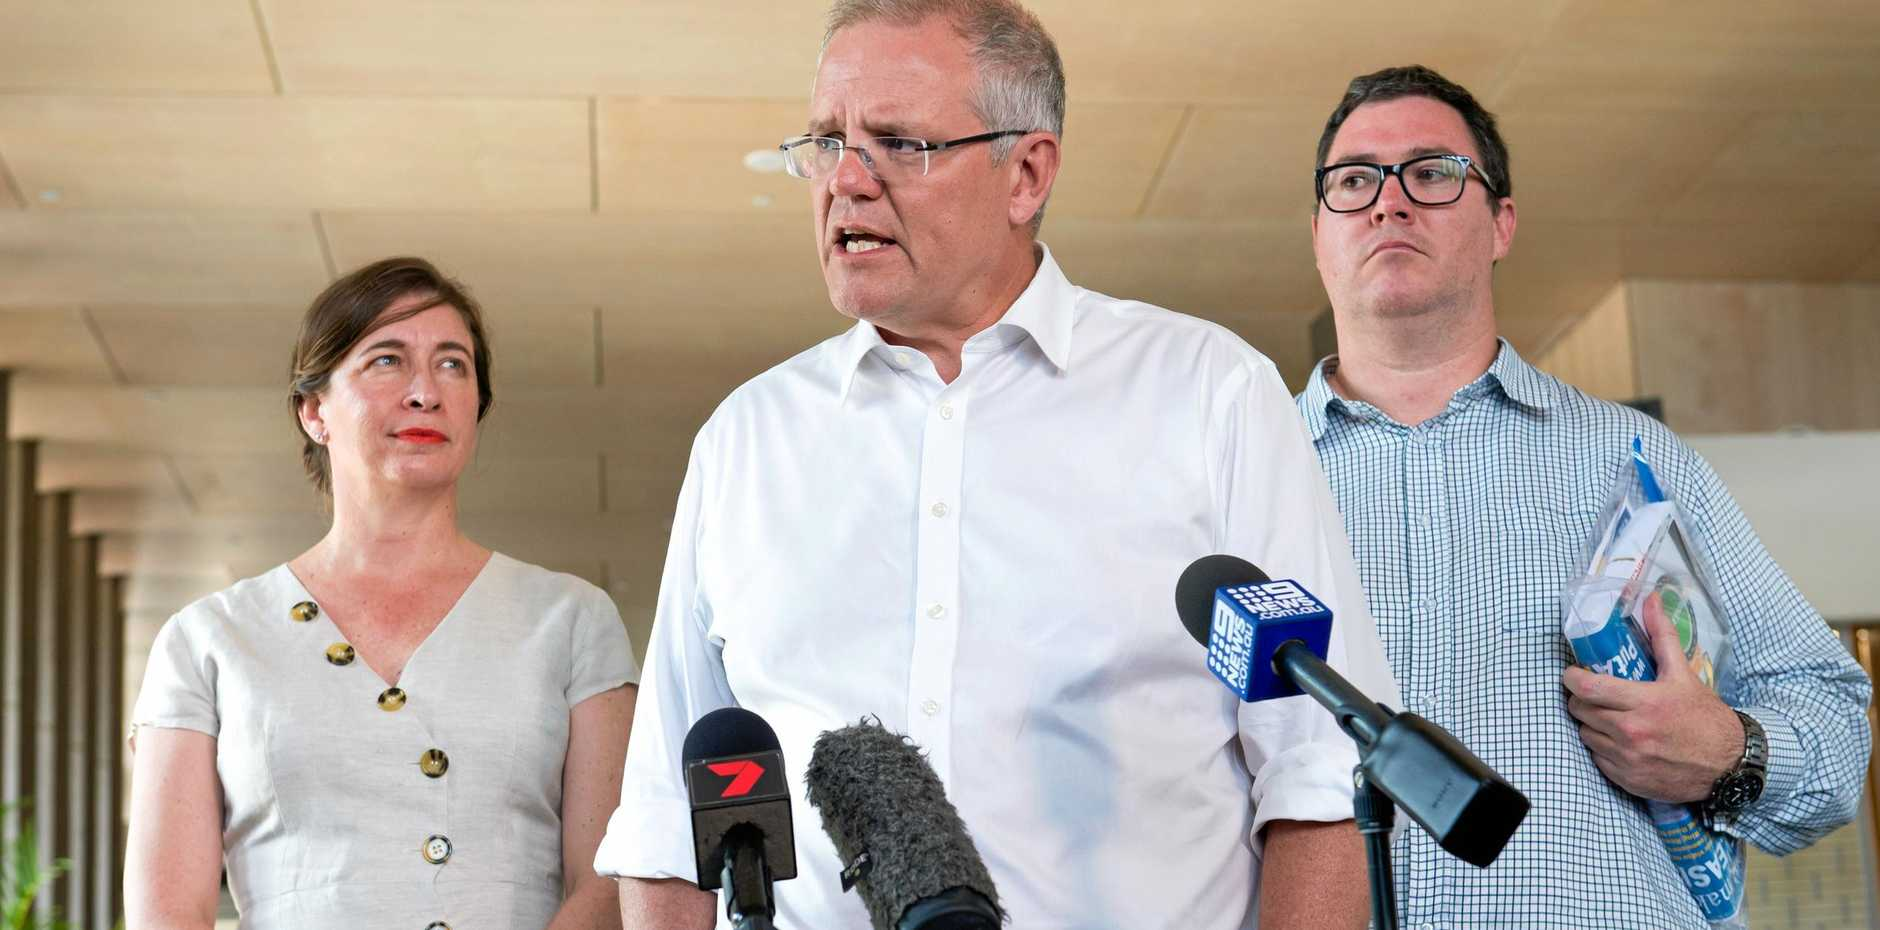 Prime Minister Scott Morrison talking at the Mackay Entertainment and Convention Centre on Thursday flagged by Liberals Senate candidate Susan McDonald and Federal Member for Dawson George Christensen.